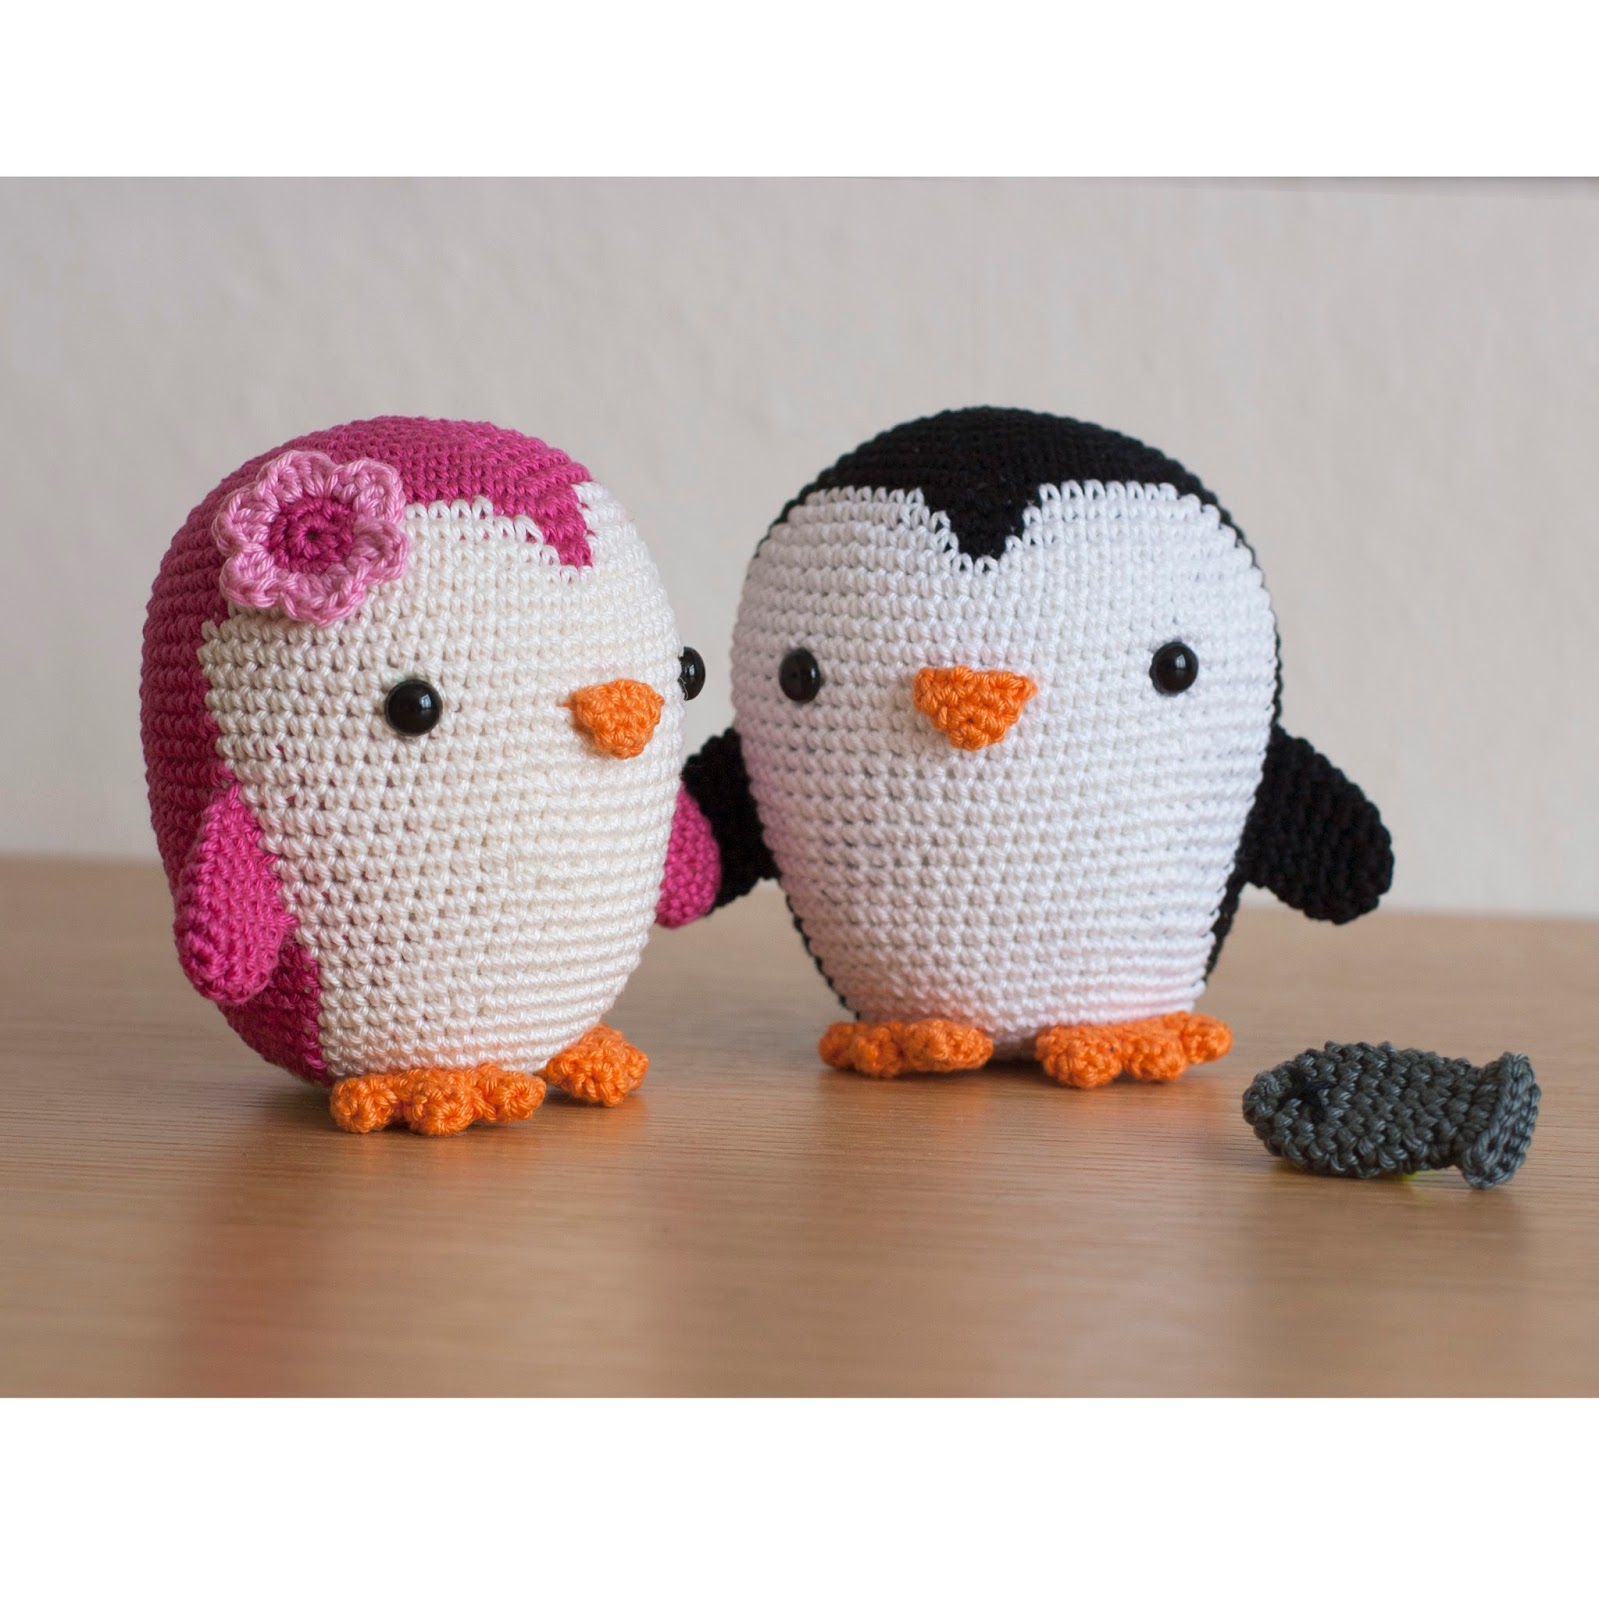 Crochet Pattern Free Penguin : Toy Patterns by DIY Fluffies : Penguin amigurumi crochet ...